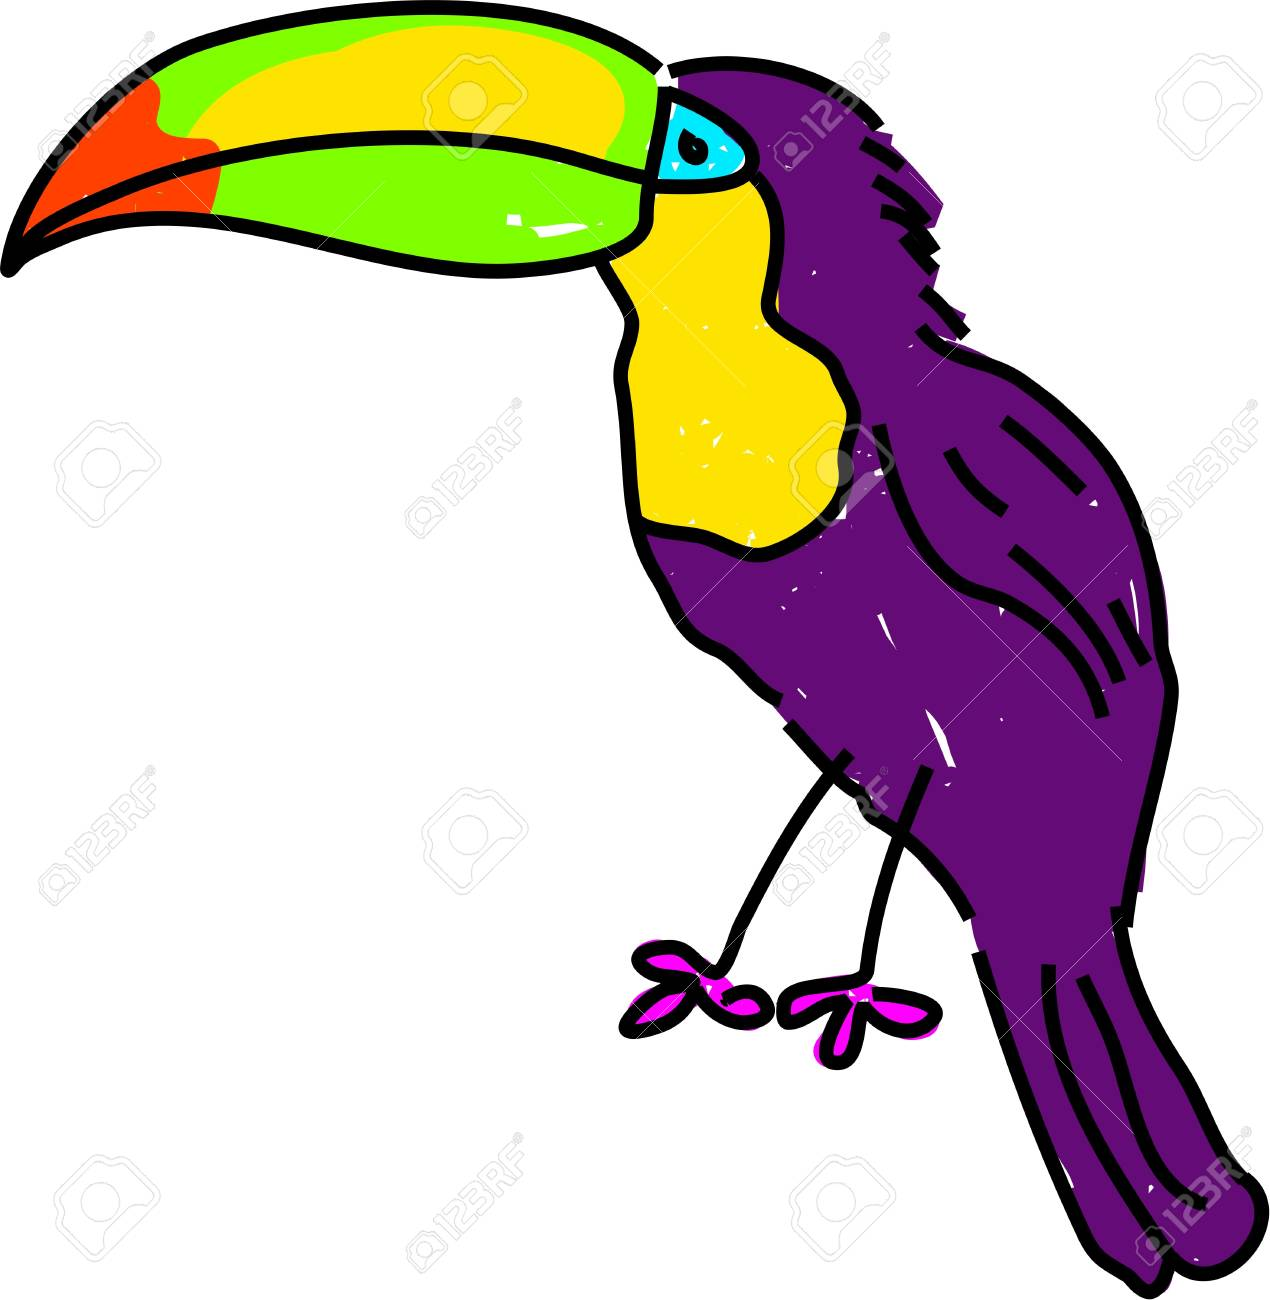 tropical toucan bird isolated on white drawn in toddler art style Stock Photo - 785836